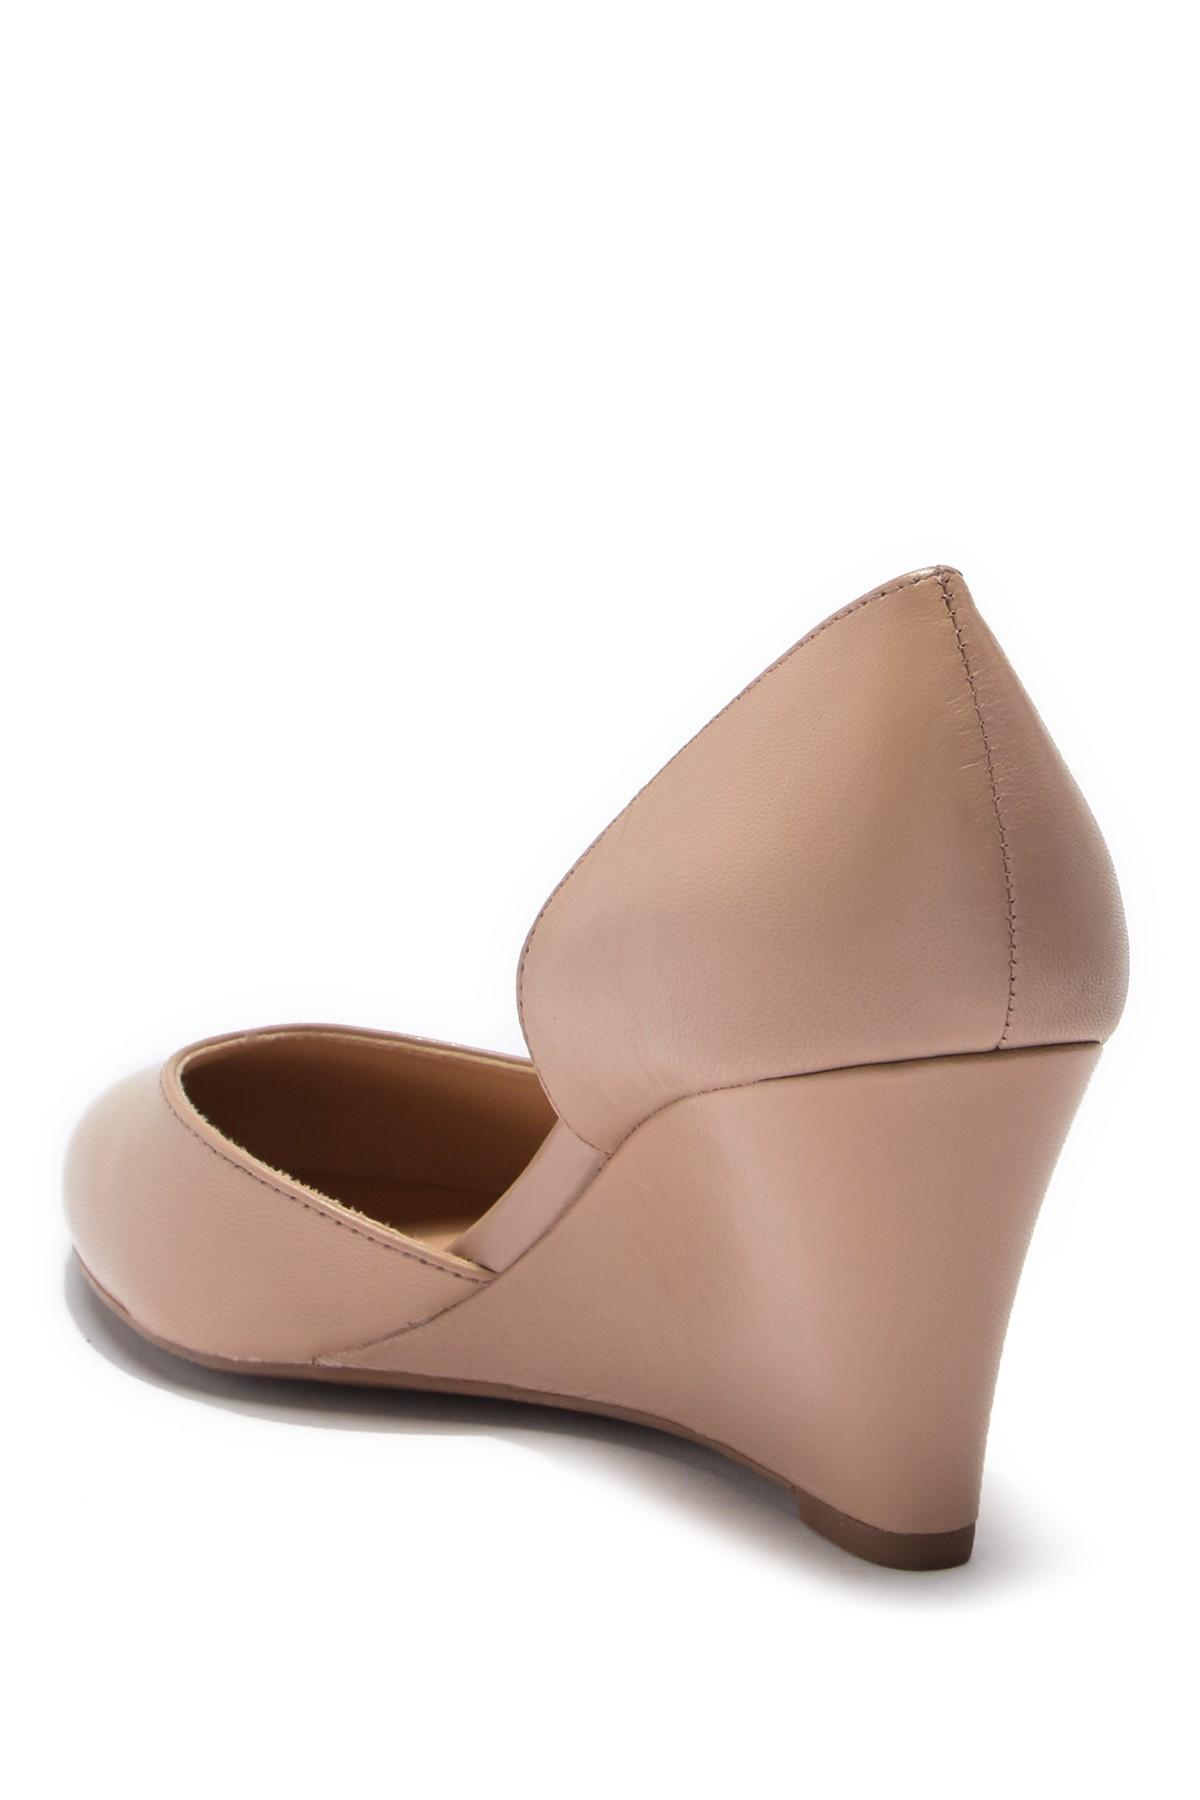 03fb08110f0 Franco Sarto - Multicolor Felice Leather D orsay Wedge Pump - Wide Width  Available -. View fullscreen